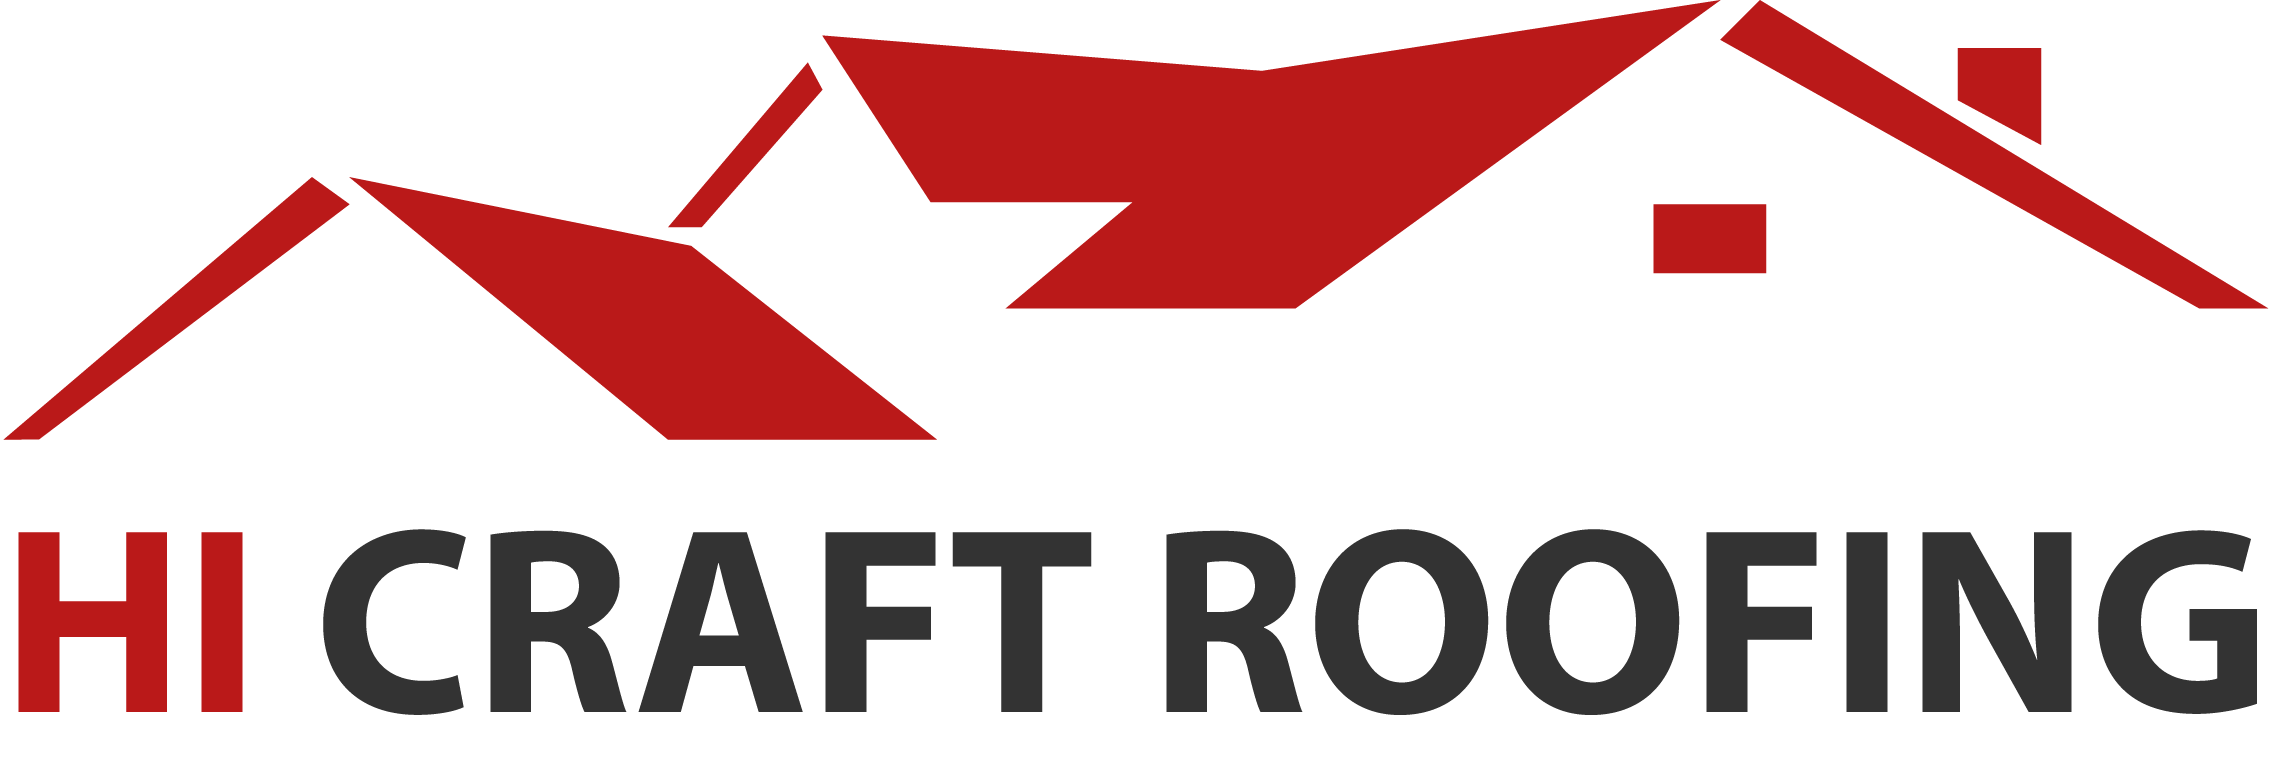 Hi Craft Roofing